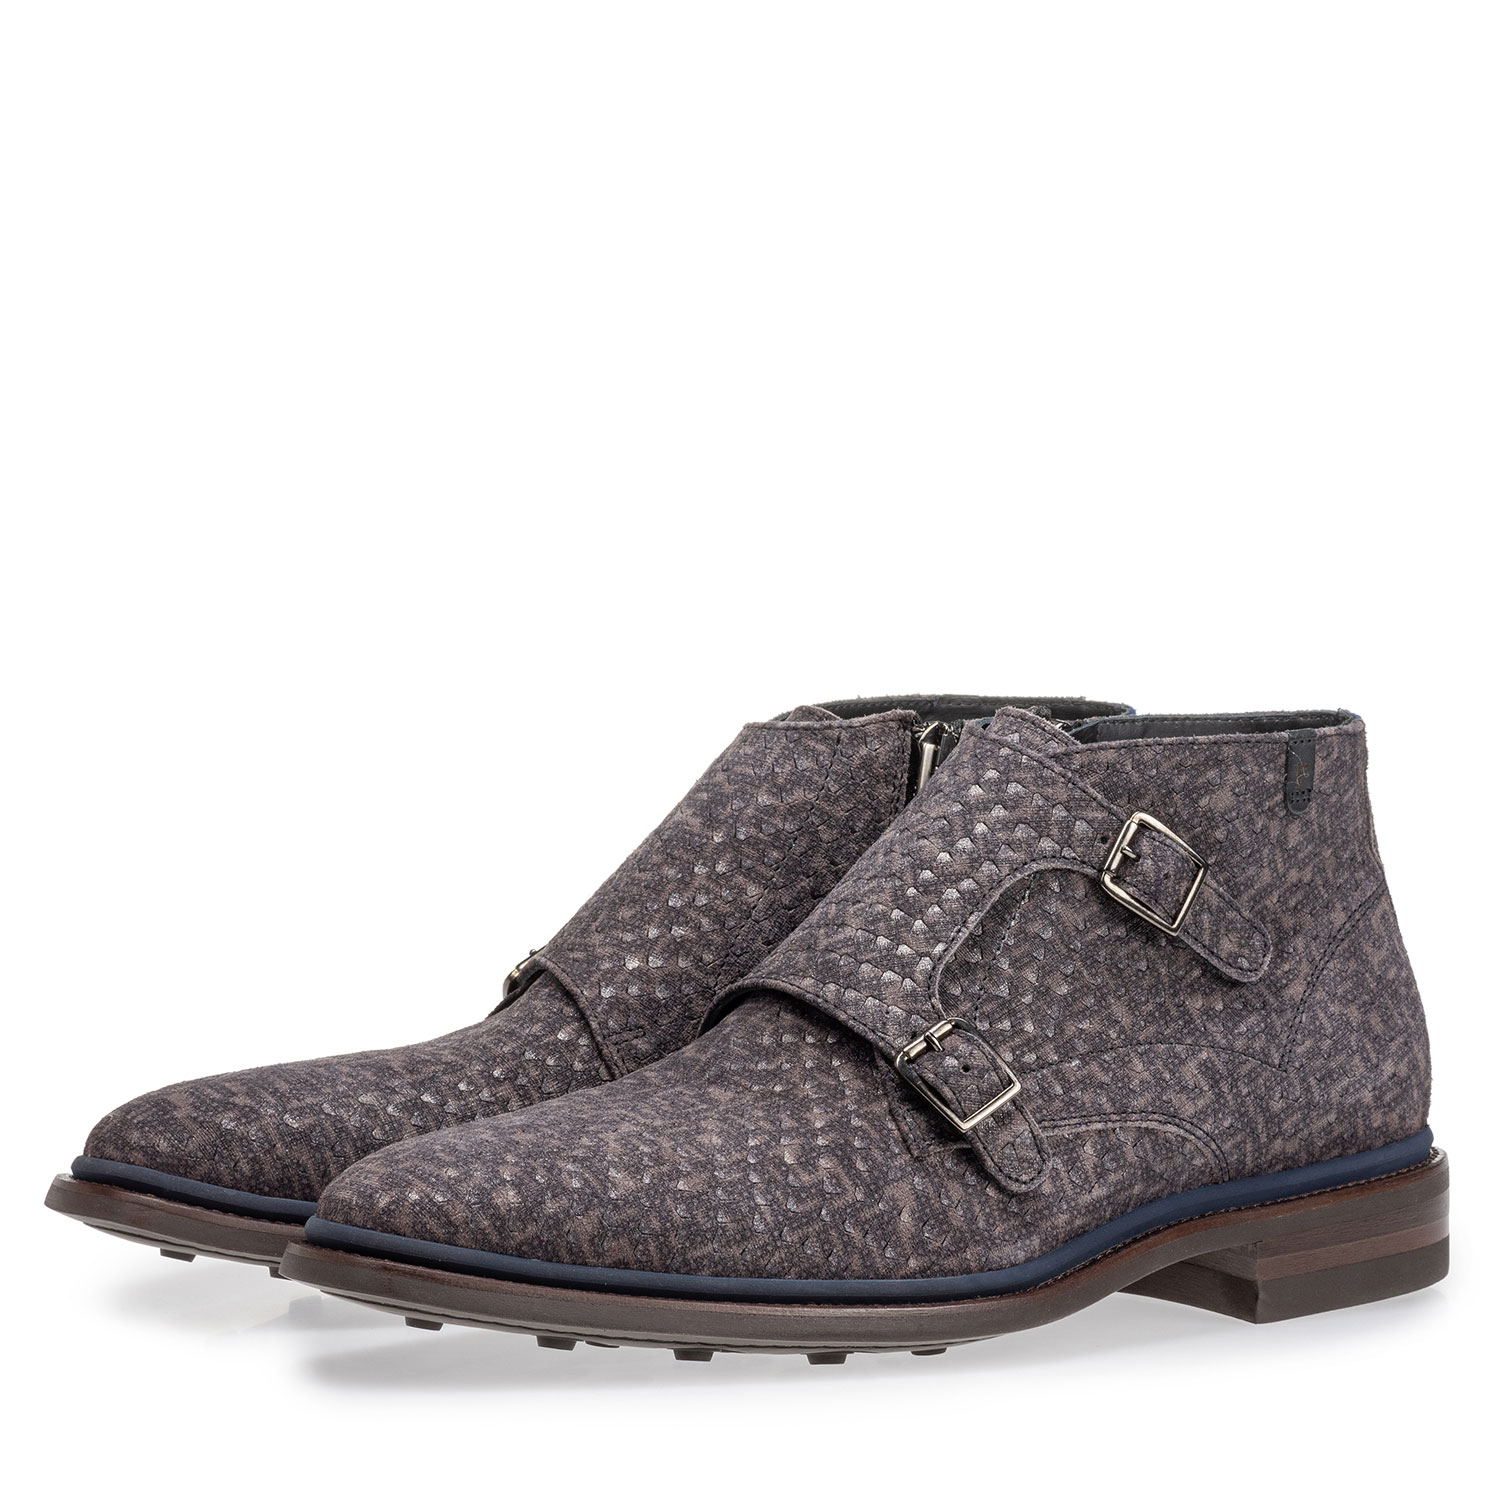 10672/06 - Boot with buckle closure grey